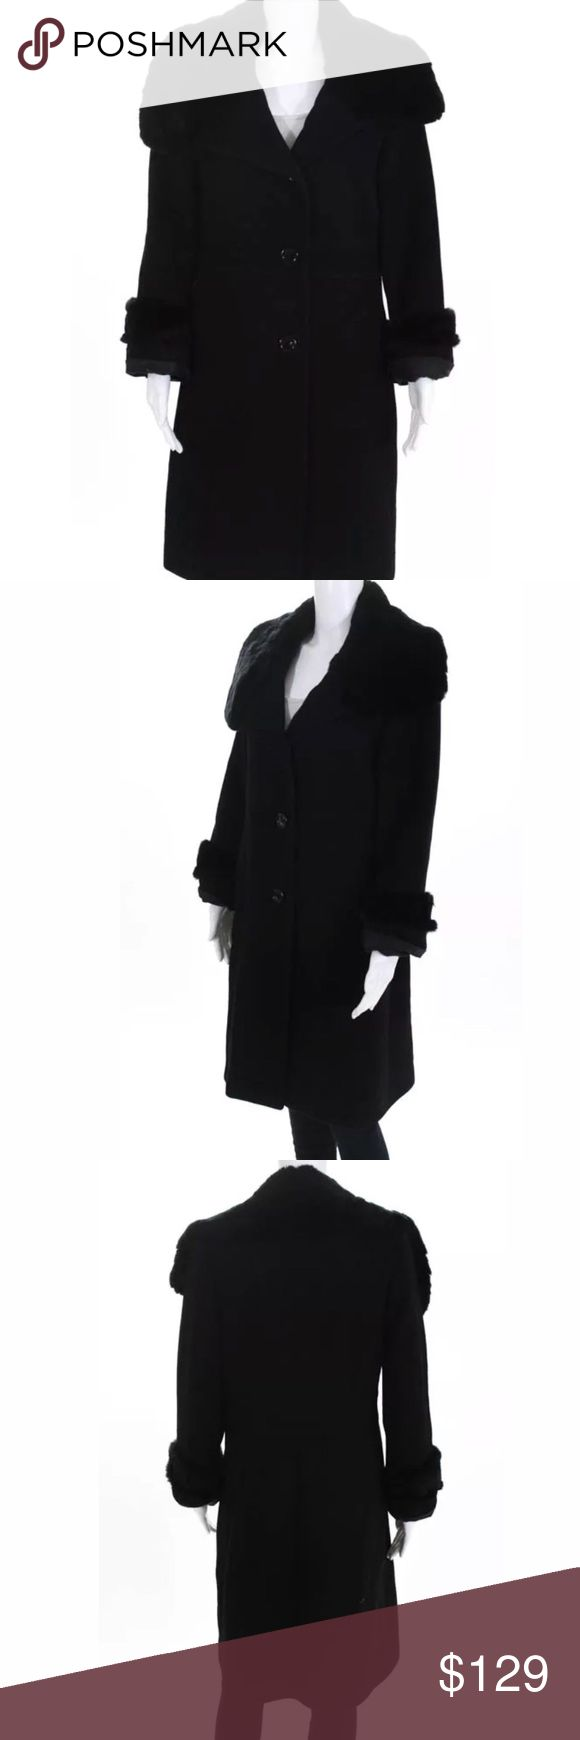 BLack wool Rabbit fur coat size 10 BLack wool Rabbit fur coat size 10 Jackets & Coats Utility Jackets